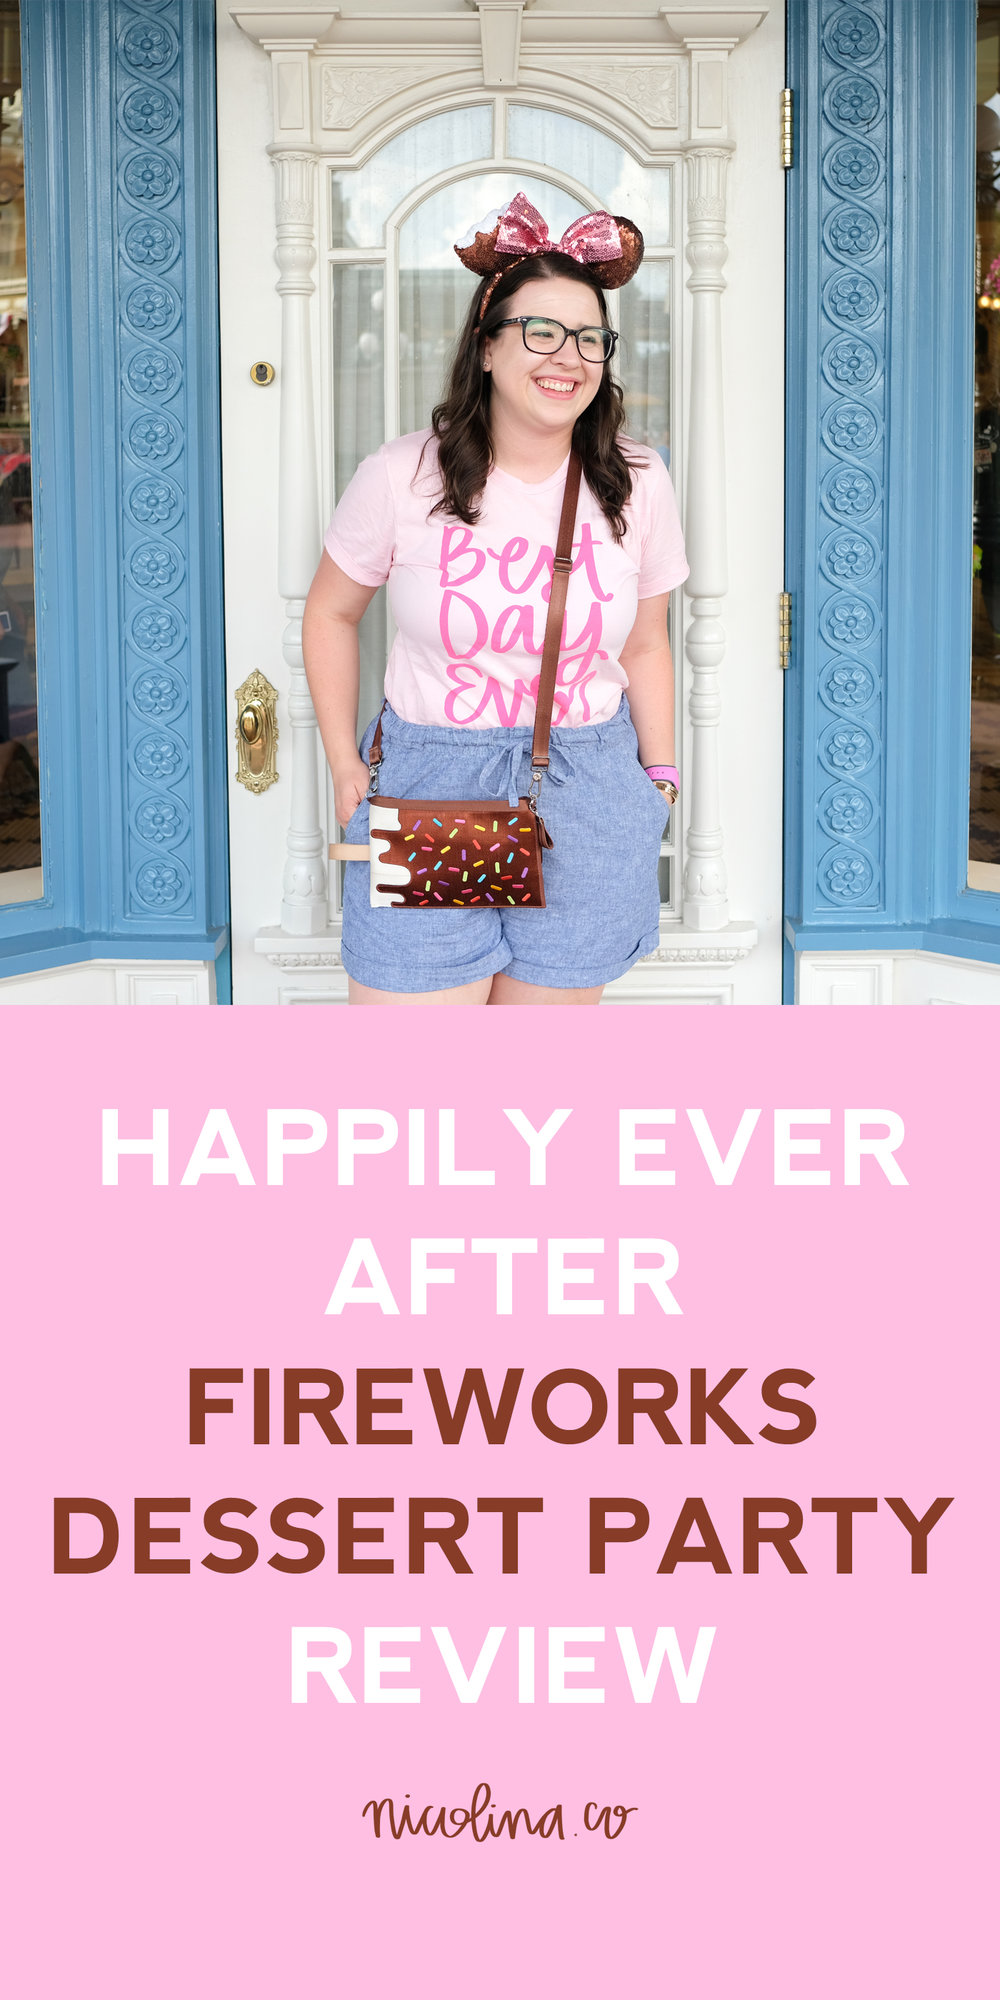 Happily Ever After Fireworks Dessert Party Reveiw